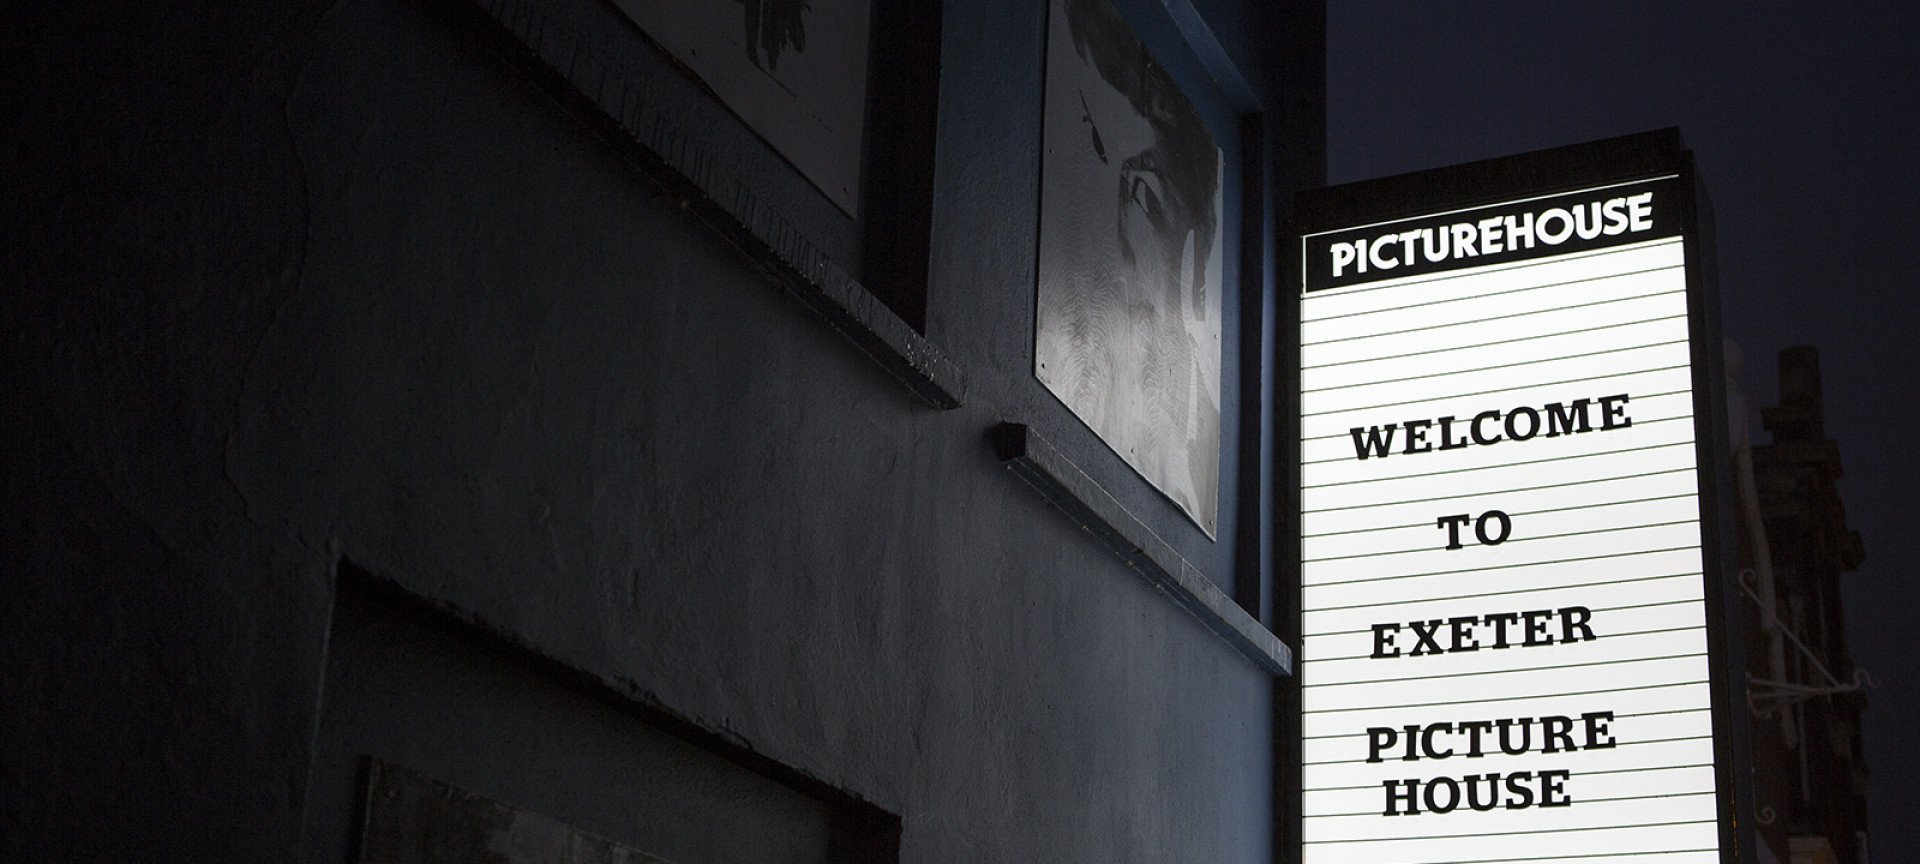 Welcome to<br>Exeter Picturehouse